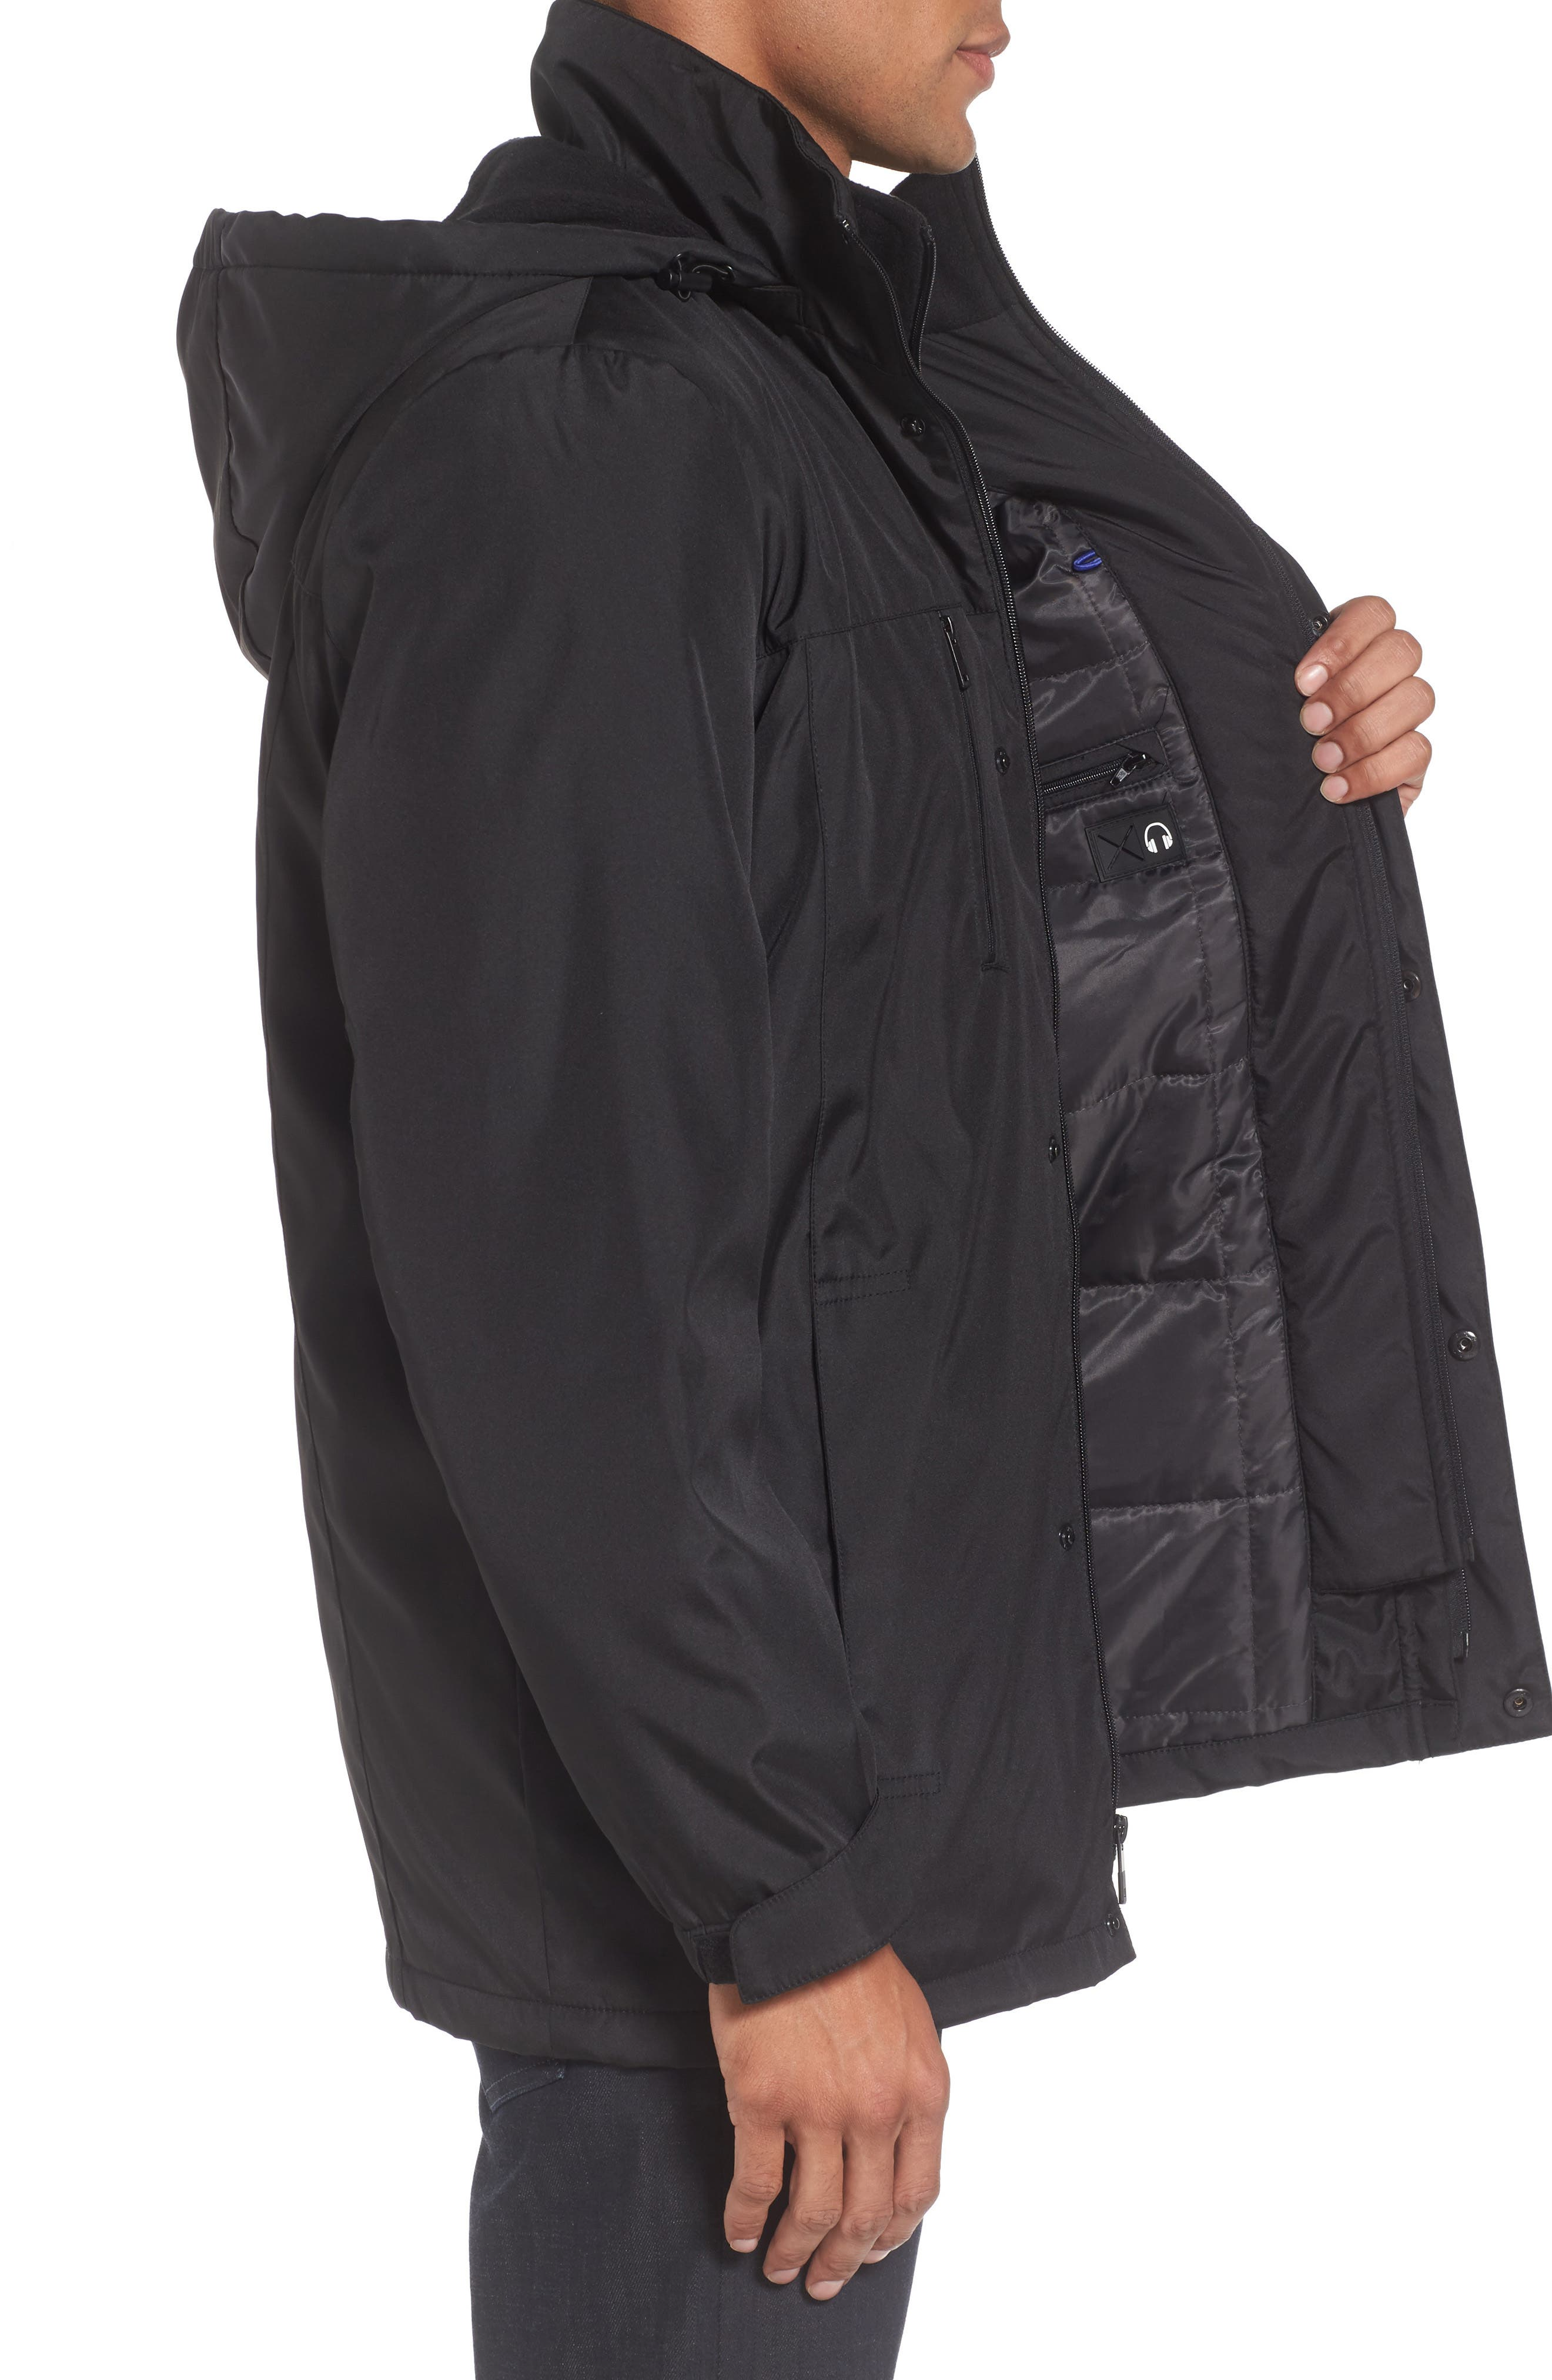 Hooded Jacket with Inset Fleece Bib,                             Alternate thumbnail 3, color,                             Black